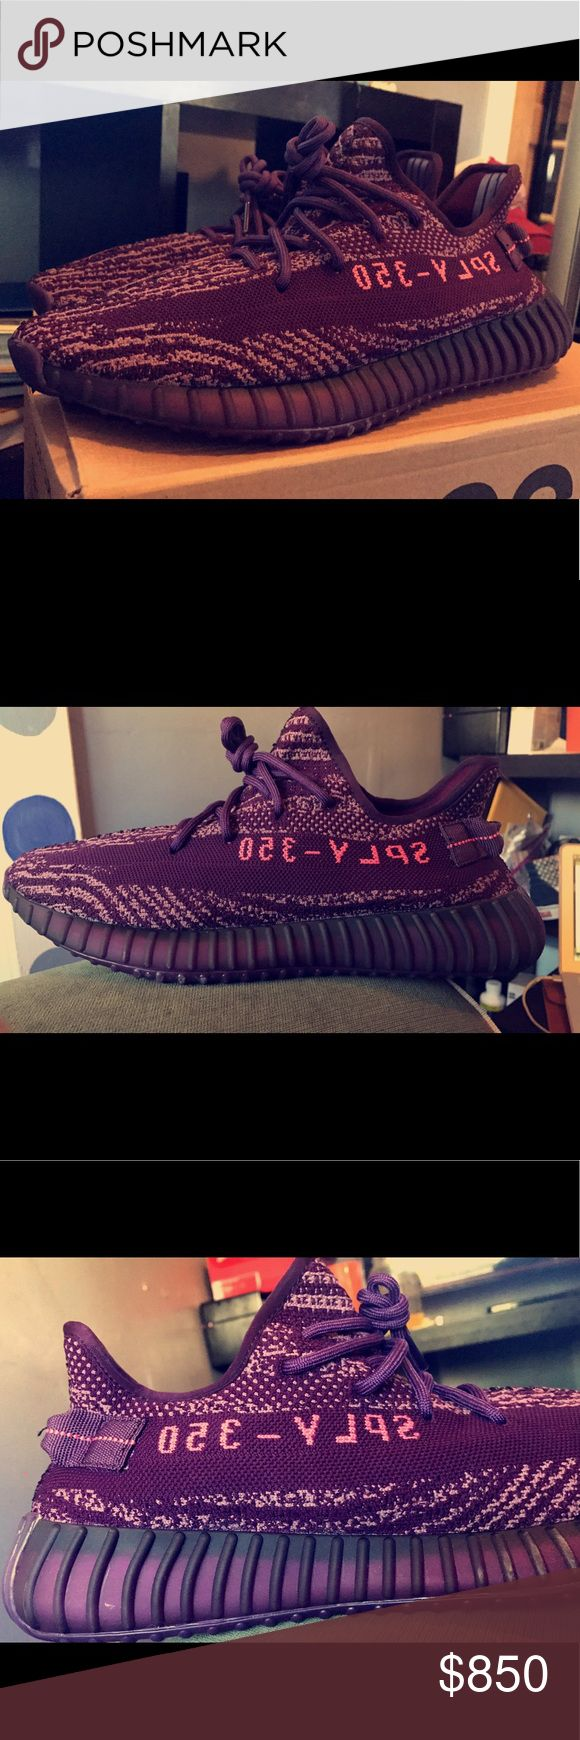 "EXCLUSIVE PRE-DROP ""Red Night"" Yeezy V2 Boost. -Size 11 US Men's  -DEADSTOCK OG Everything  -Got some of the new ""Red Night"" V2 350 Yeezy Boosts  Even more amazing in person, pics don't do it justice. Please no negativity  on my page, all love! ?'s txt (480) 808-9979 Yeezy Shoes Sneakers"